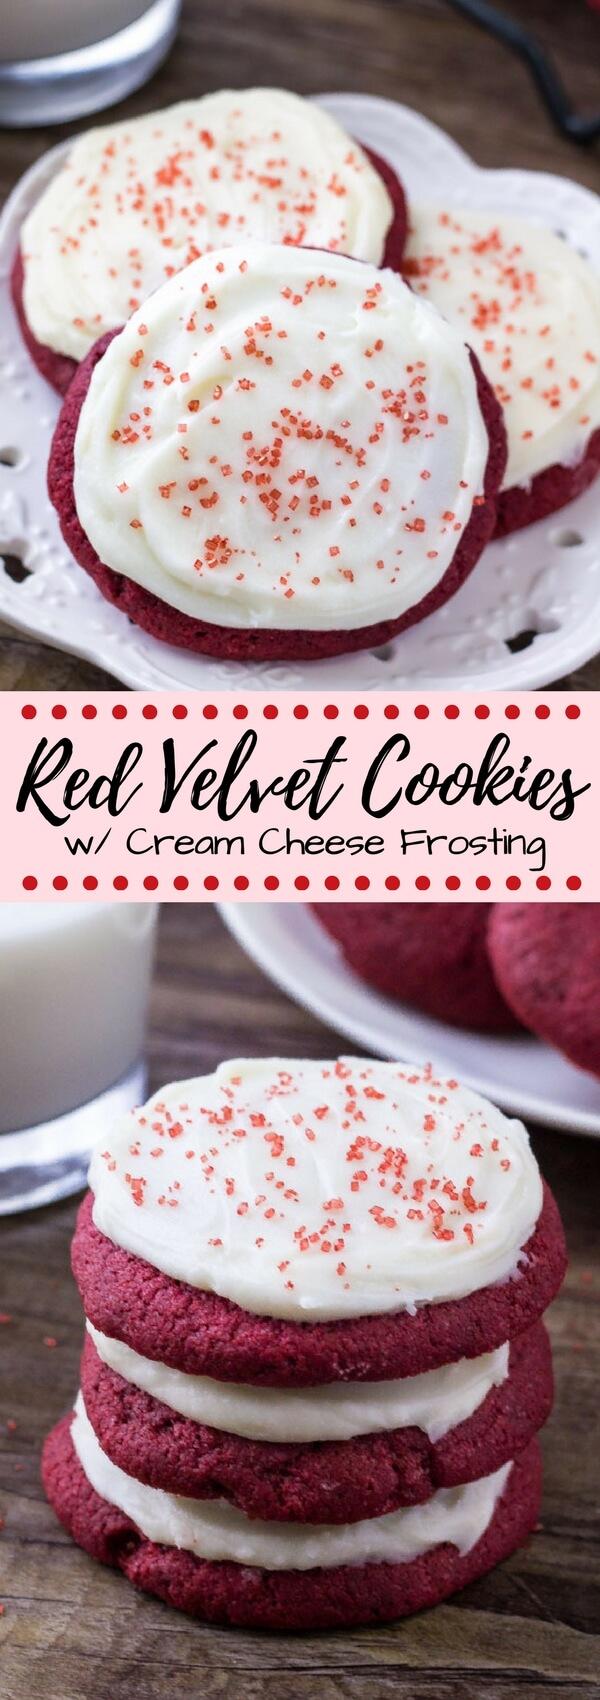 If you love Lofthouse cookies - then you definitely need to try these Red Velvet Cookies with Cream Cheese Frosting. They're pillowy soft with a delicate crumb, delicious red velvet flavor, and cream cheese frosting. #redvelvet #redvelvetcookies #lofthousecookies